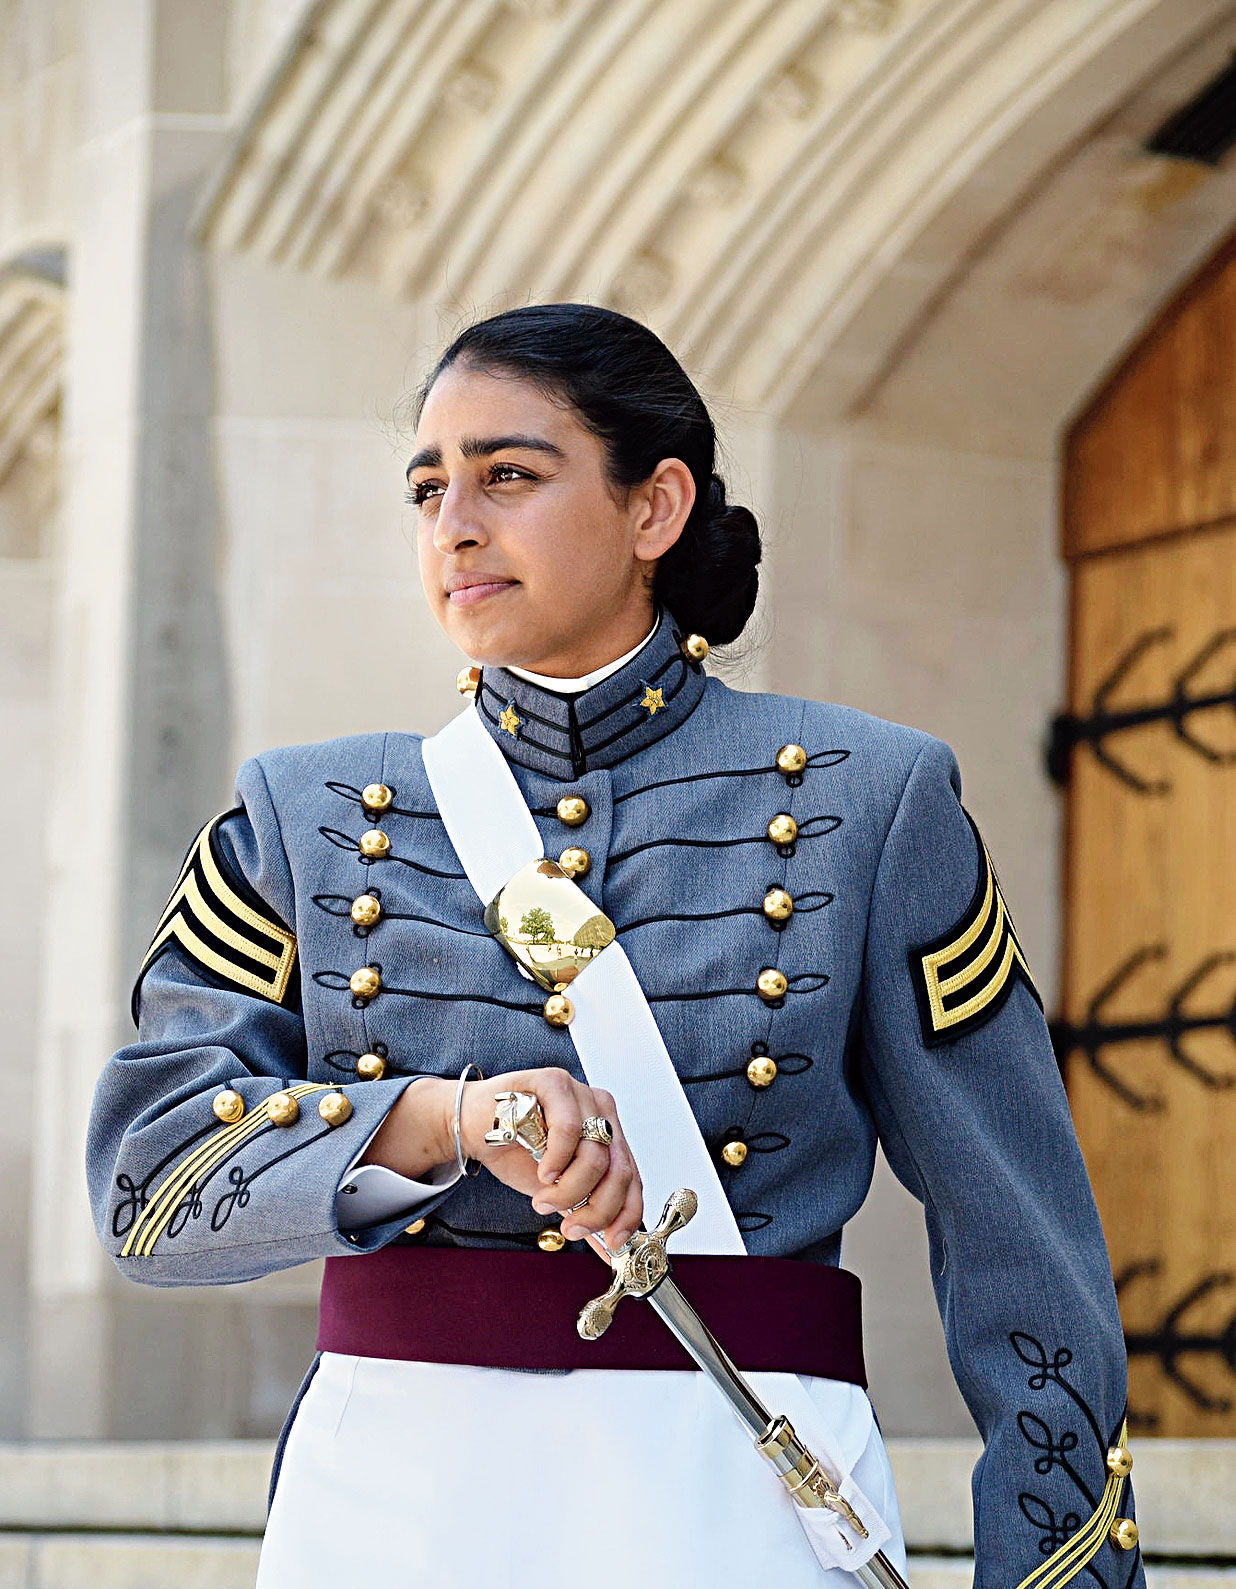 Anmol Narang said she mailed her application to West Point from a hotel in Hawaii immediately after visiting the Pearl Harbor memorial during her junior year in high school.